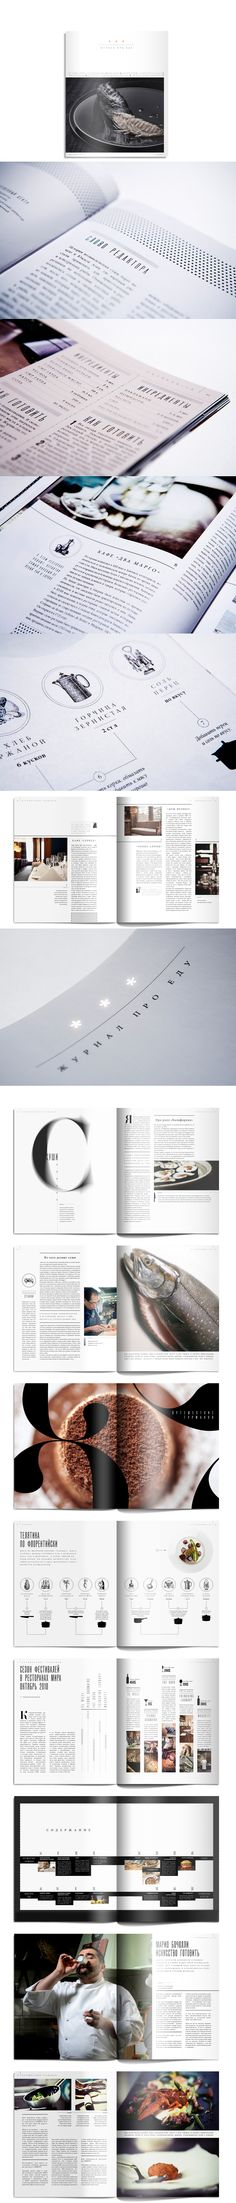 A layout of Creative magazine design inspirations: Three stars Food Magazine Editorial Design. Layout Design, Web Design, Graphic Design Layouts, Print Layout, Graphic Design Inspiration, Book Design, Journal Design, Print Design, Typography Layout